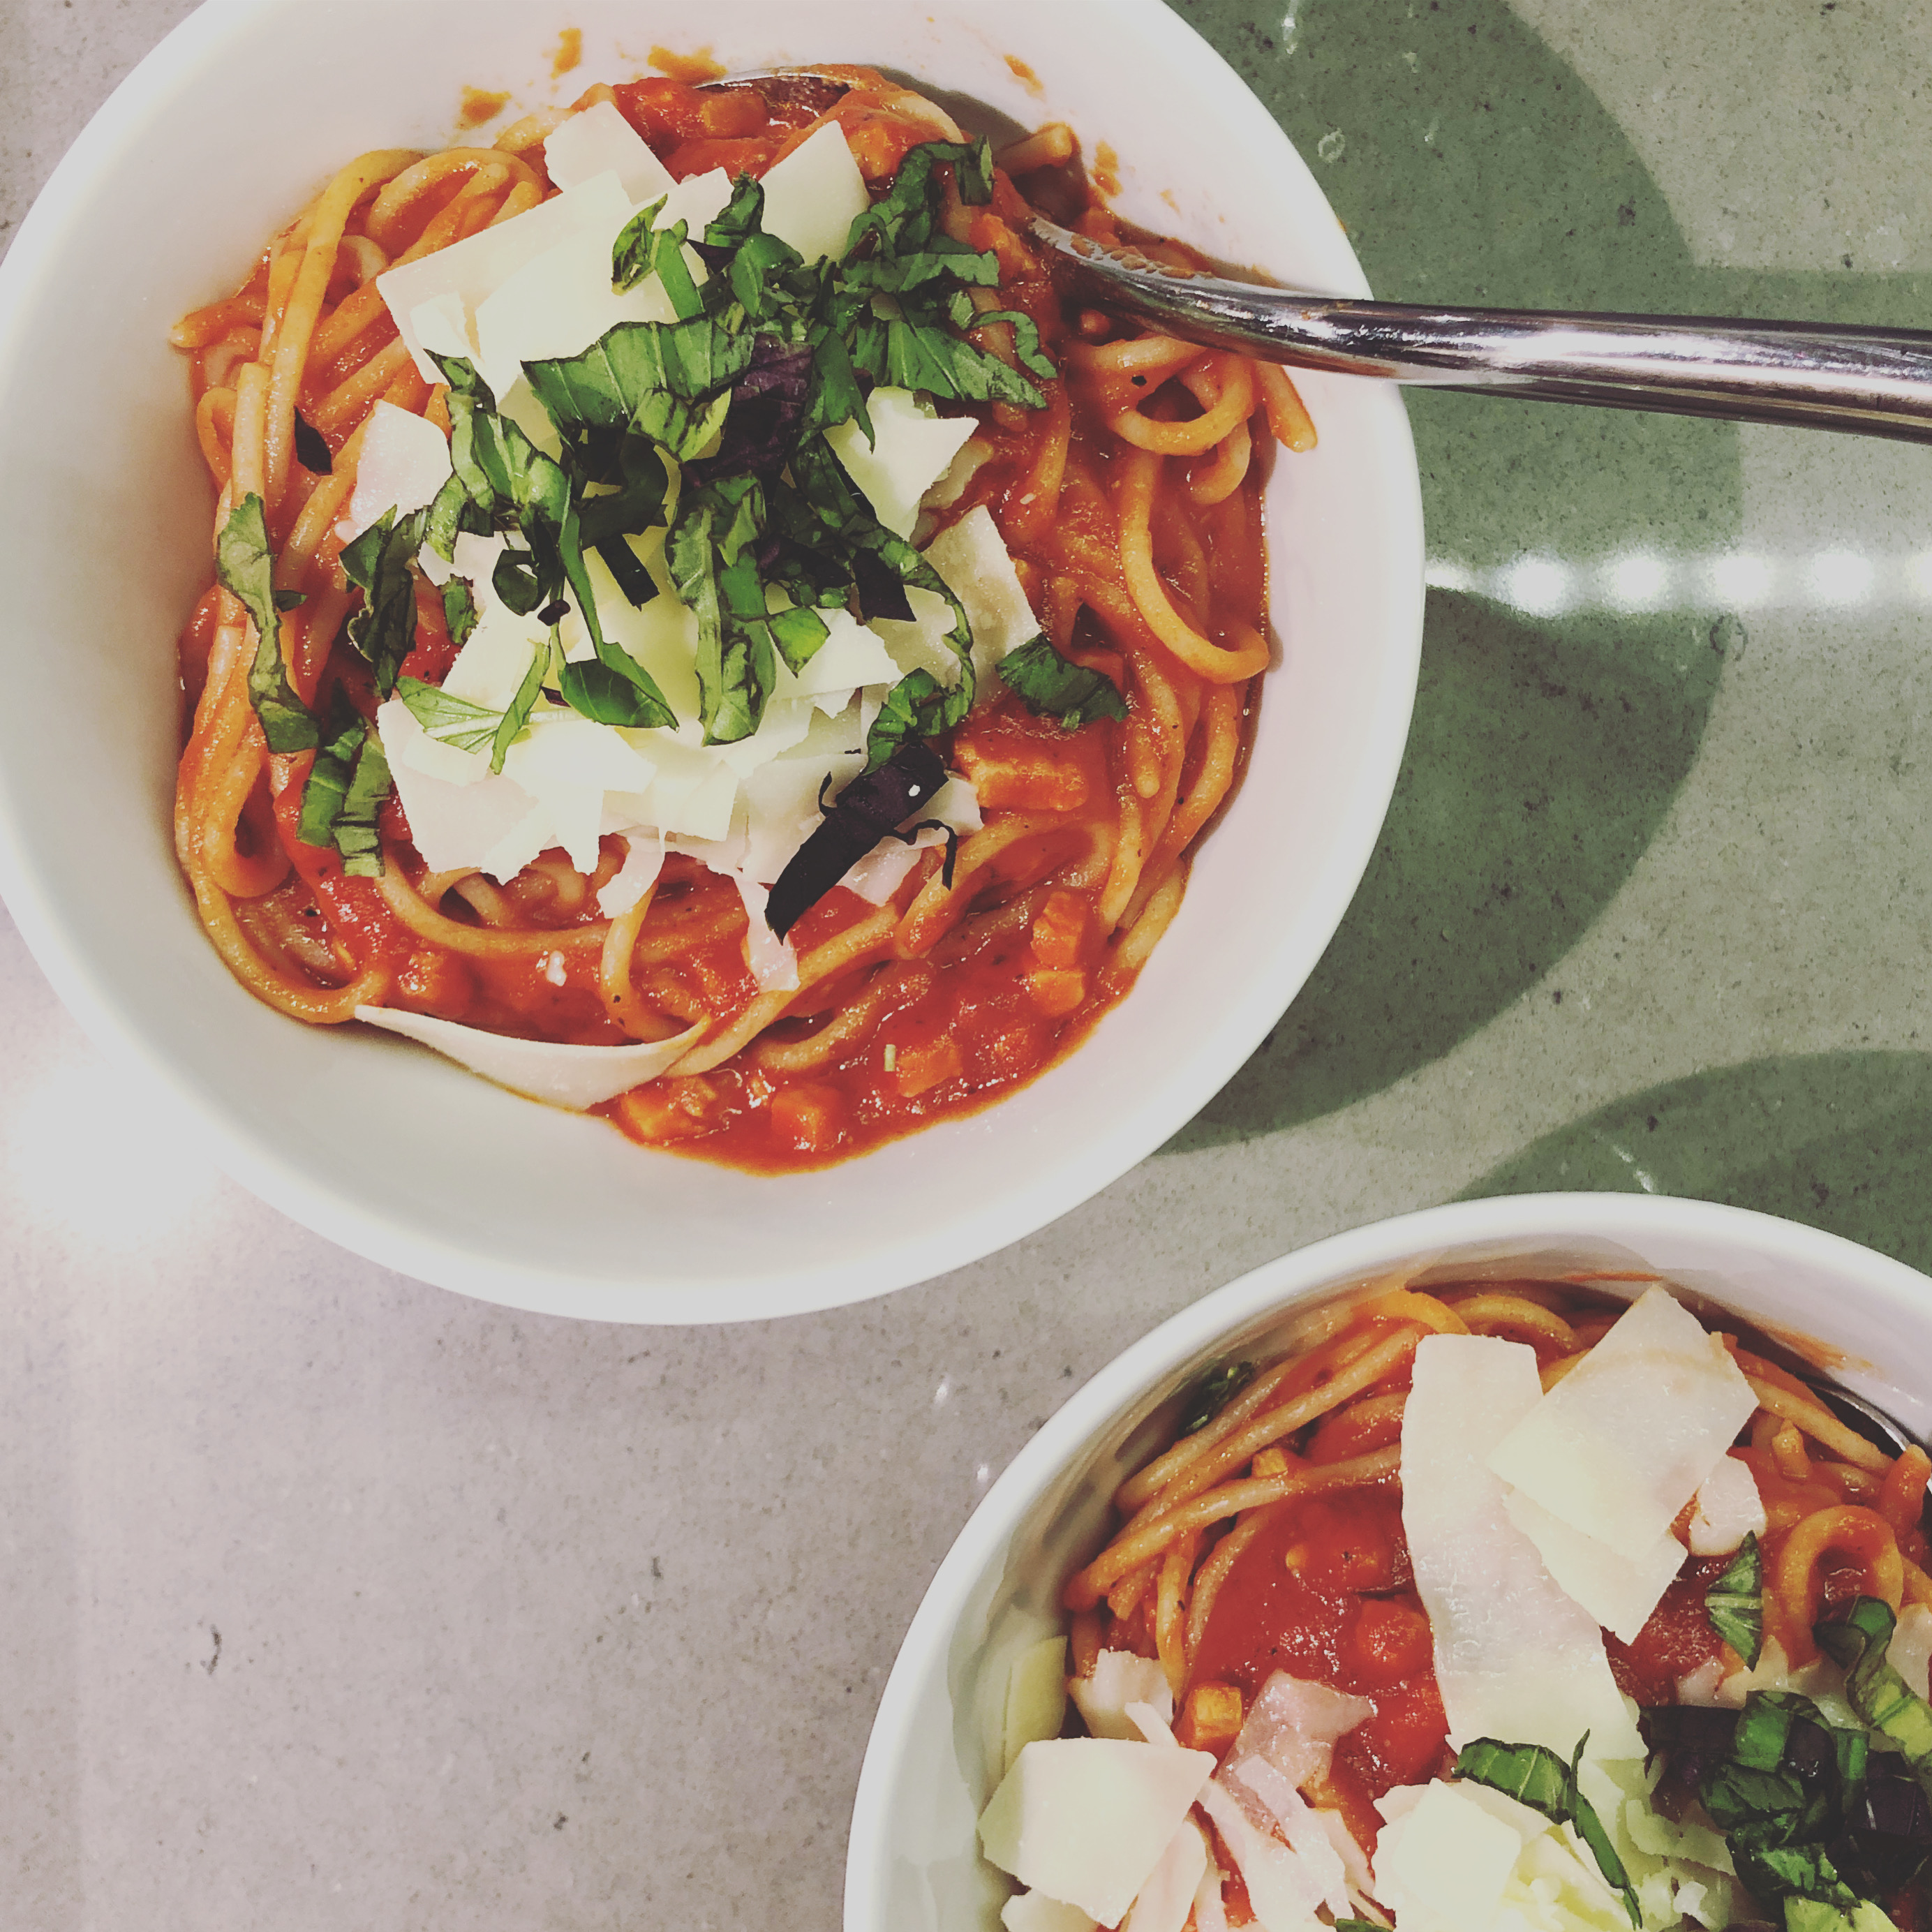 Two white bowls of spaghetti with tomato sauce, strips of cheese and shreds of bright green basil